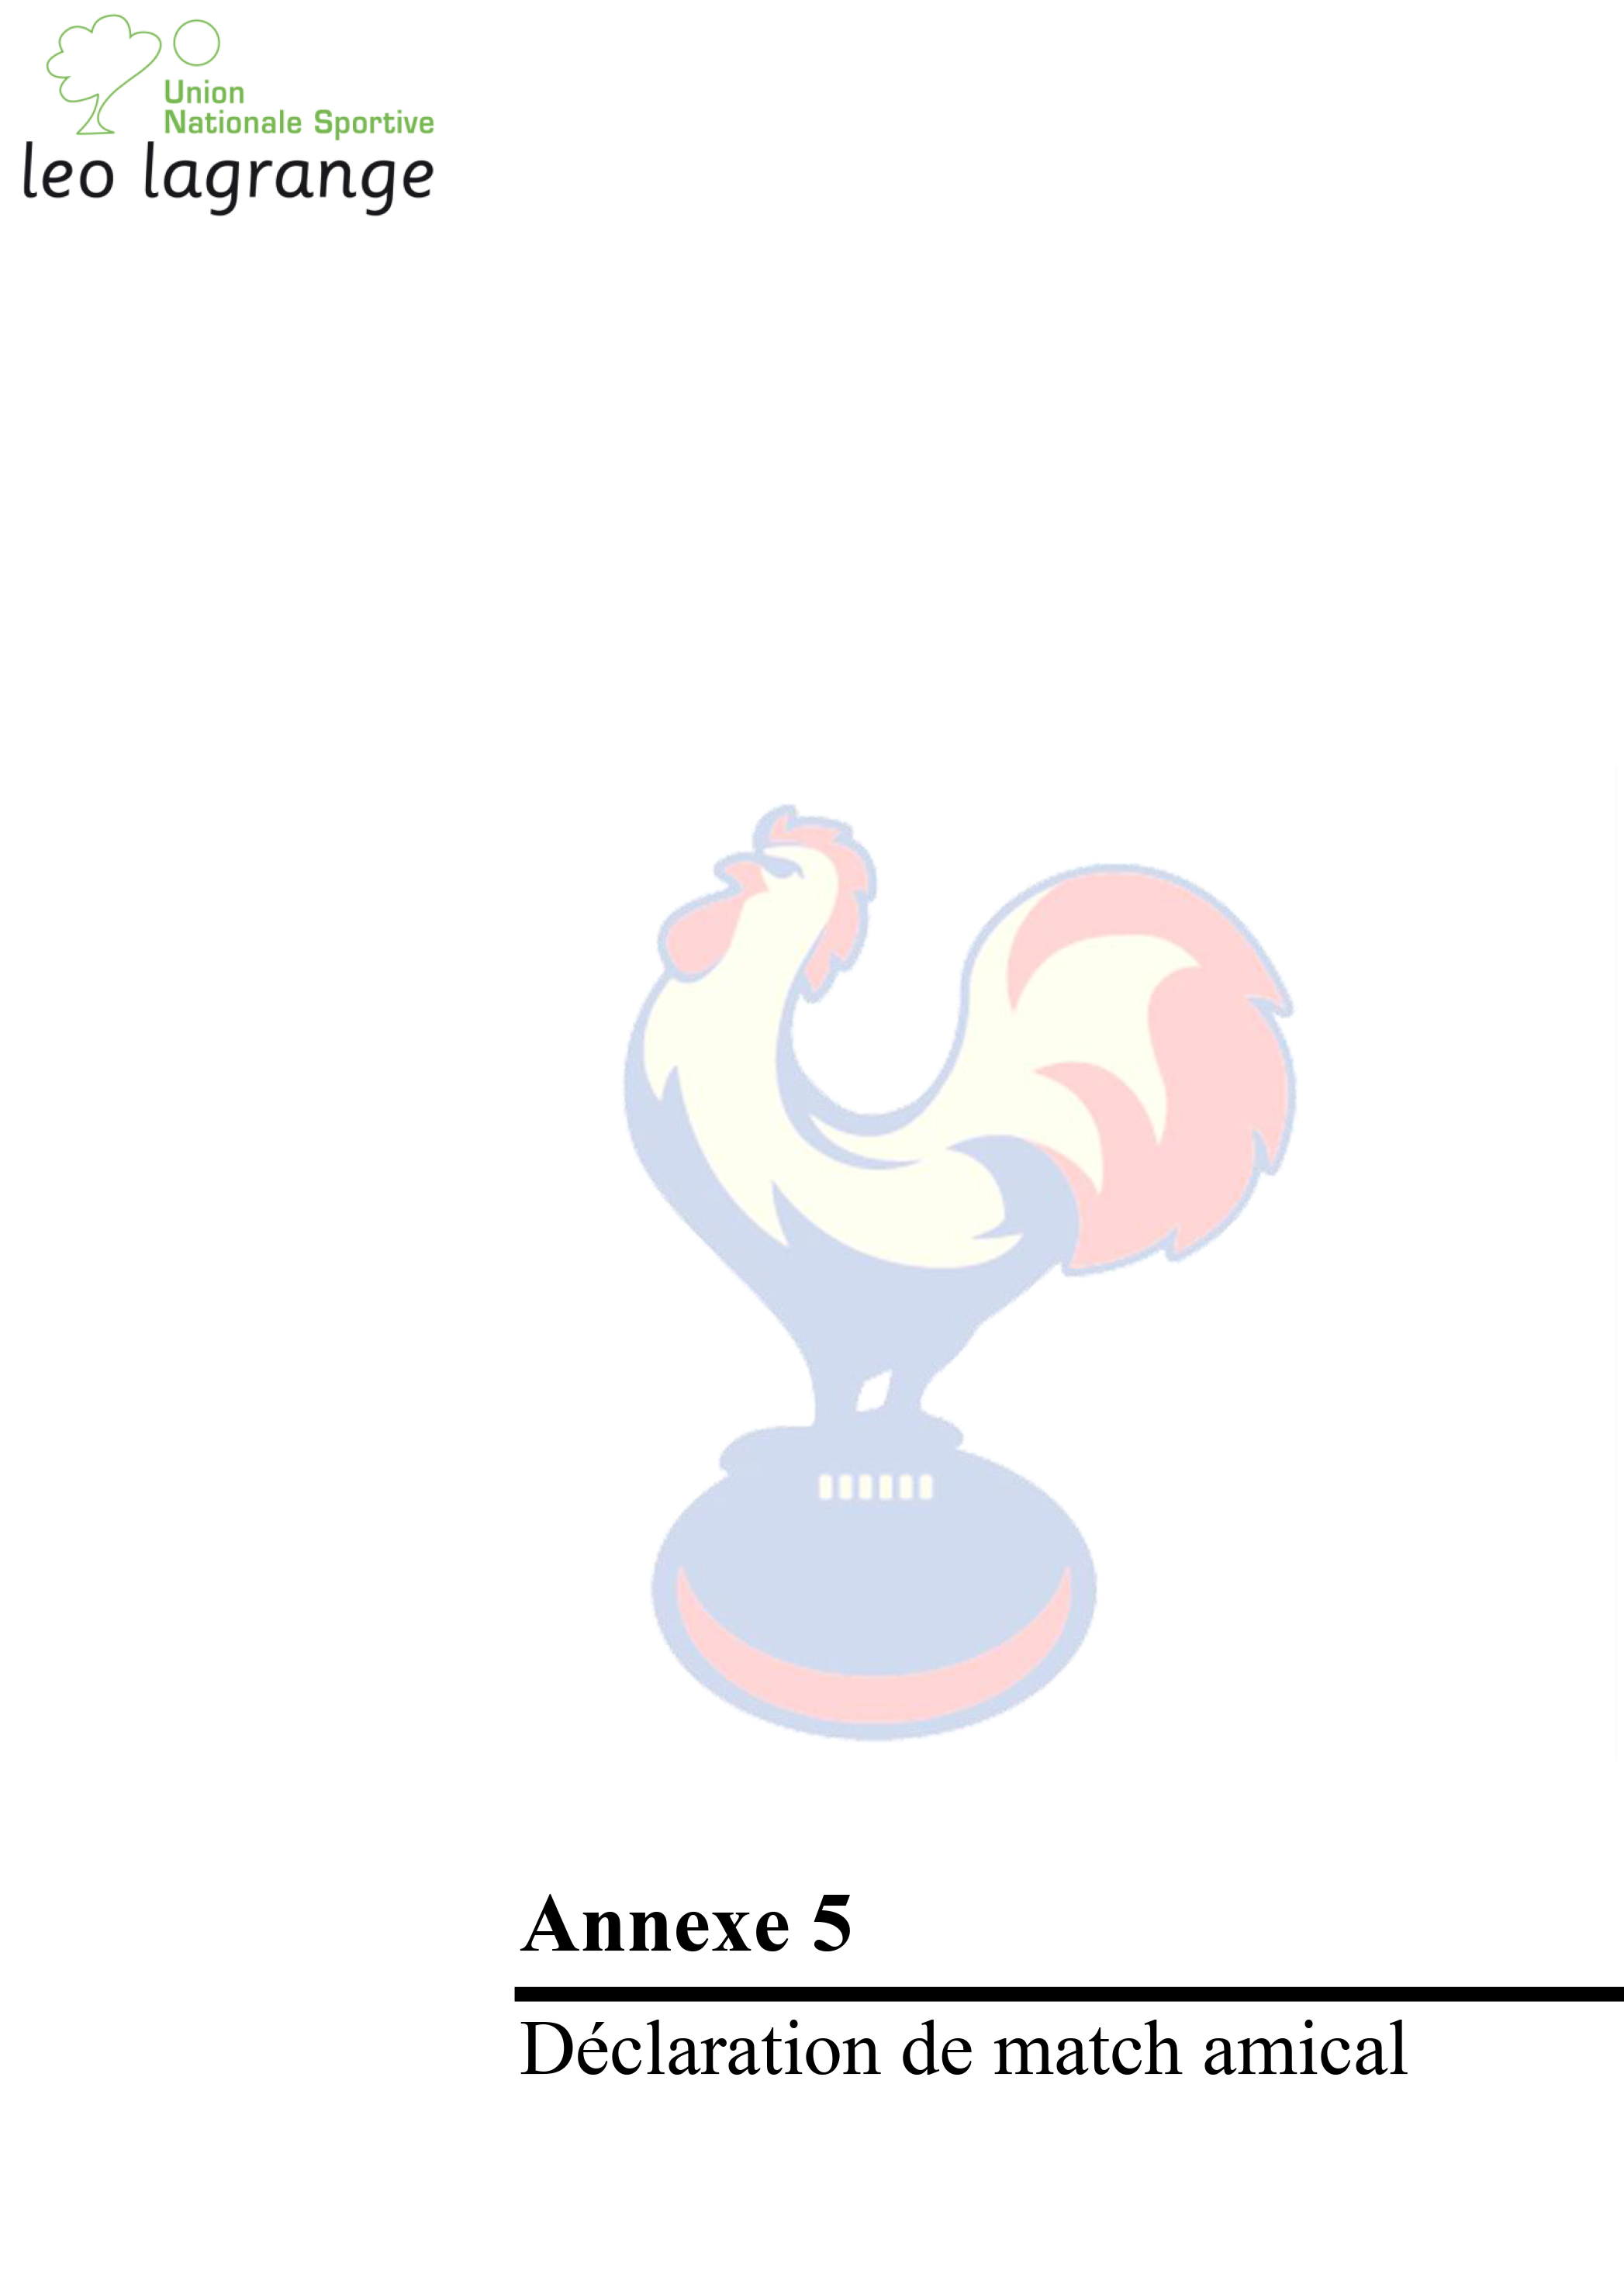 Annexe 5 Declaration match amical-1